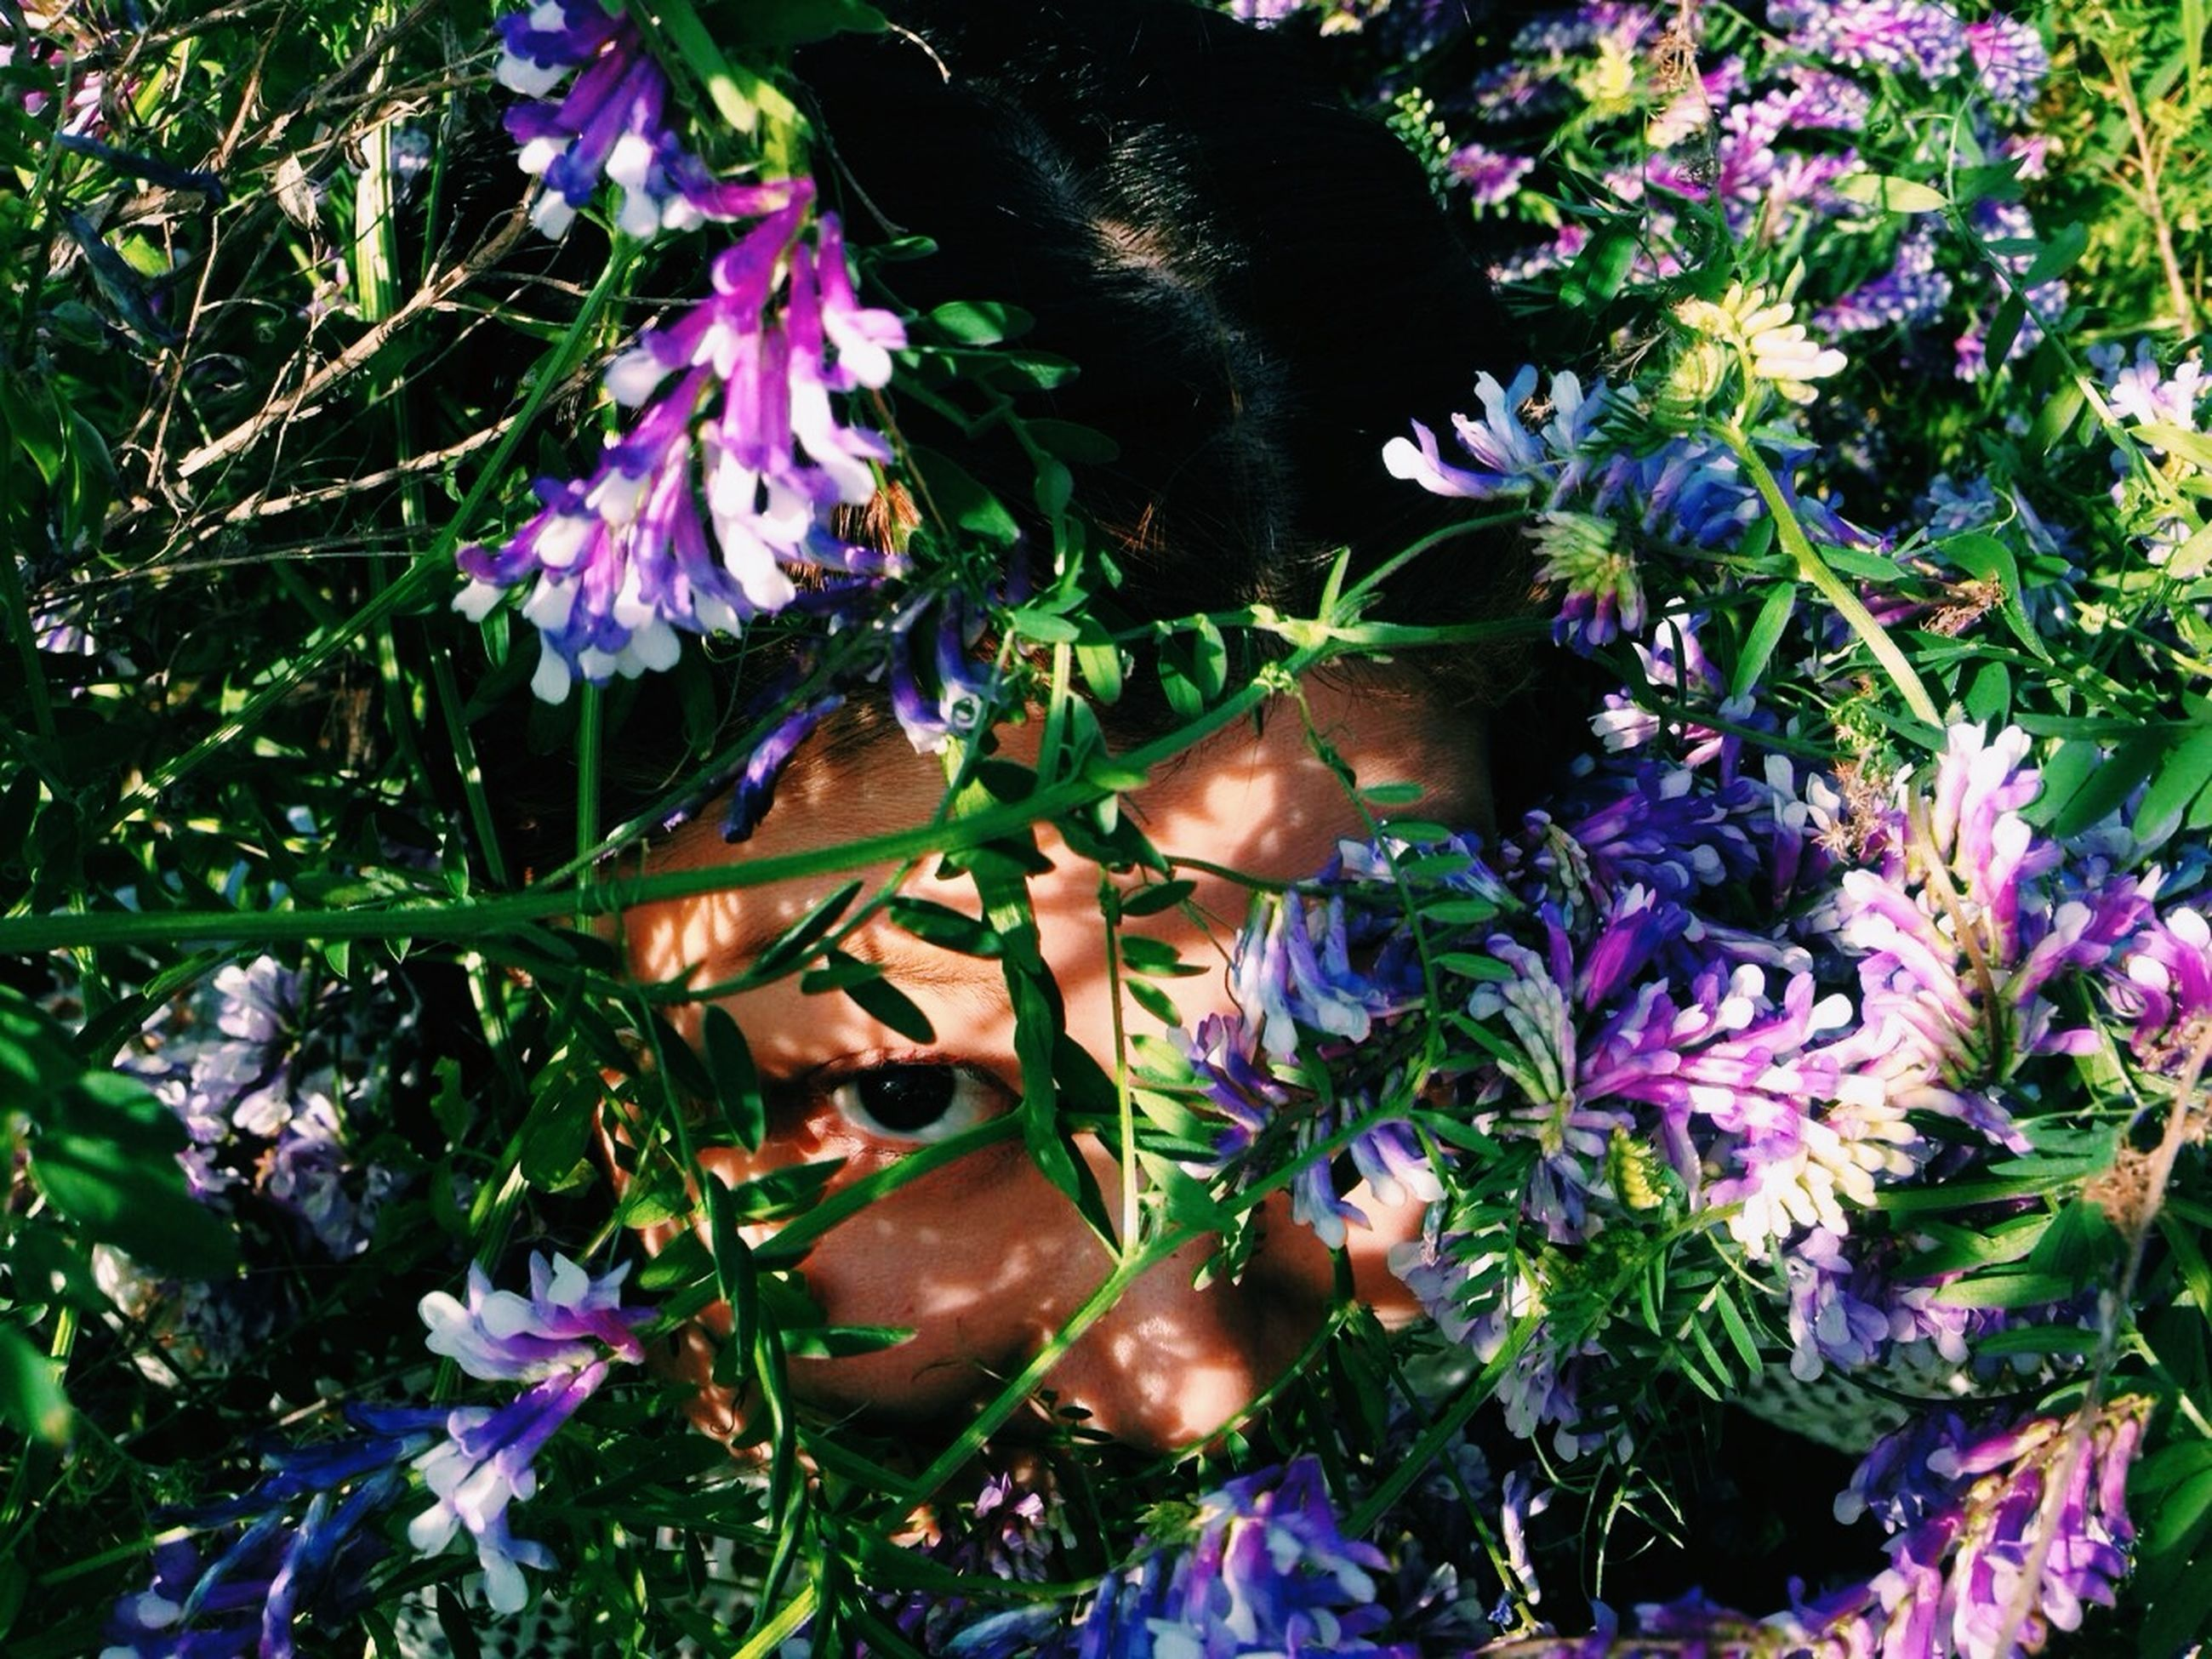 flower, purple, freshness, growth, fragility, plant, petal, beauty in nature, blooming, nature, flower head, high angle view, field, in bloom, close-up, outdoors, day, no people, grass, park - man made space